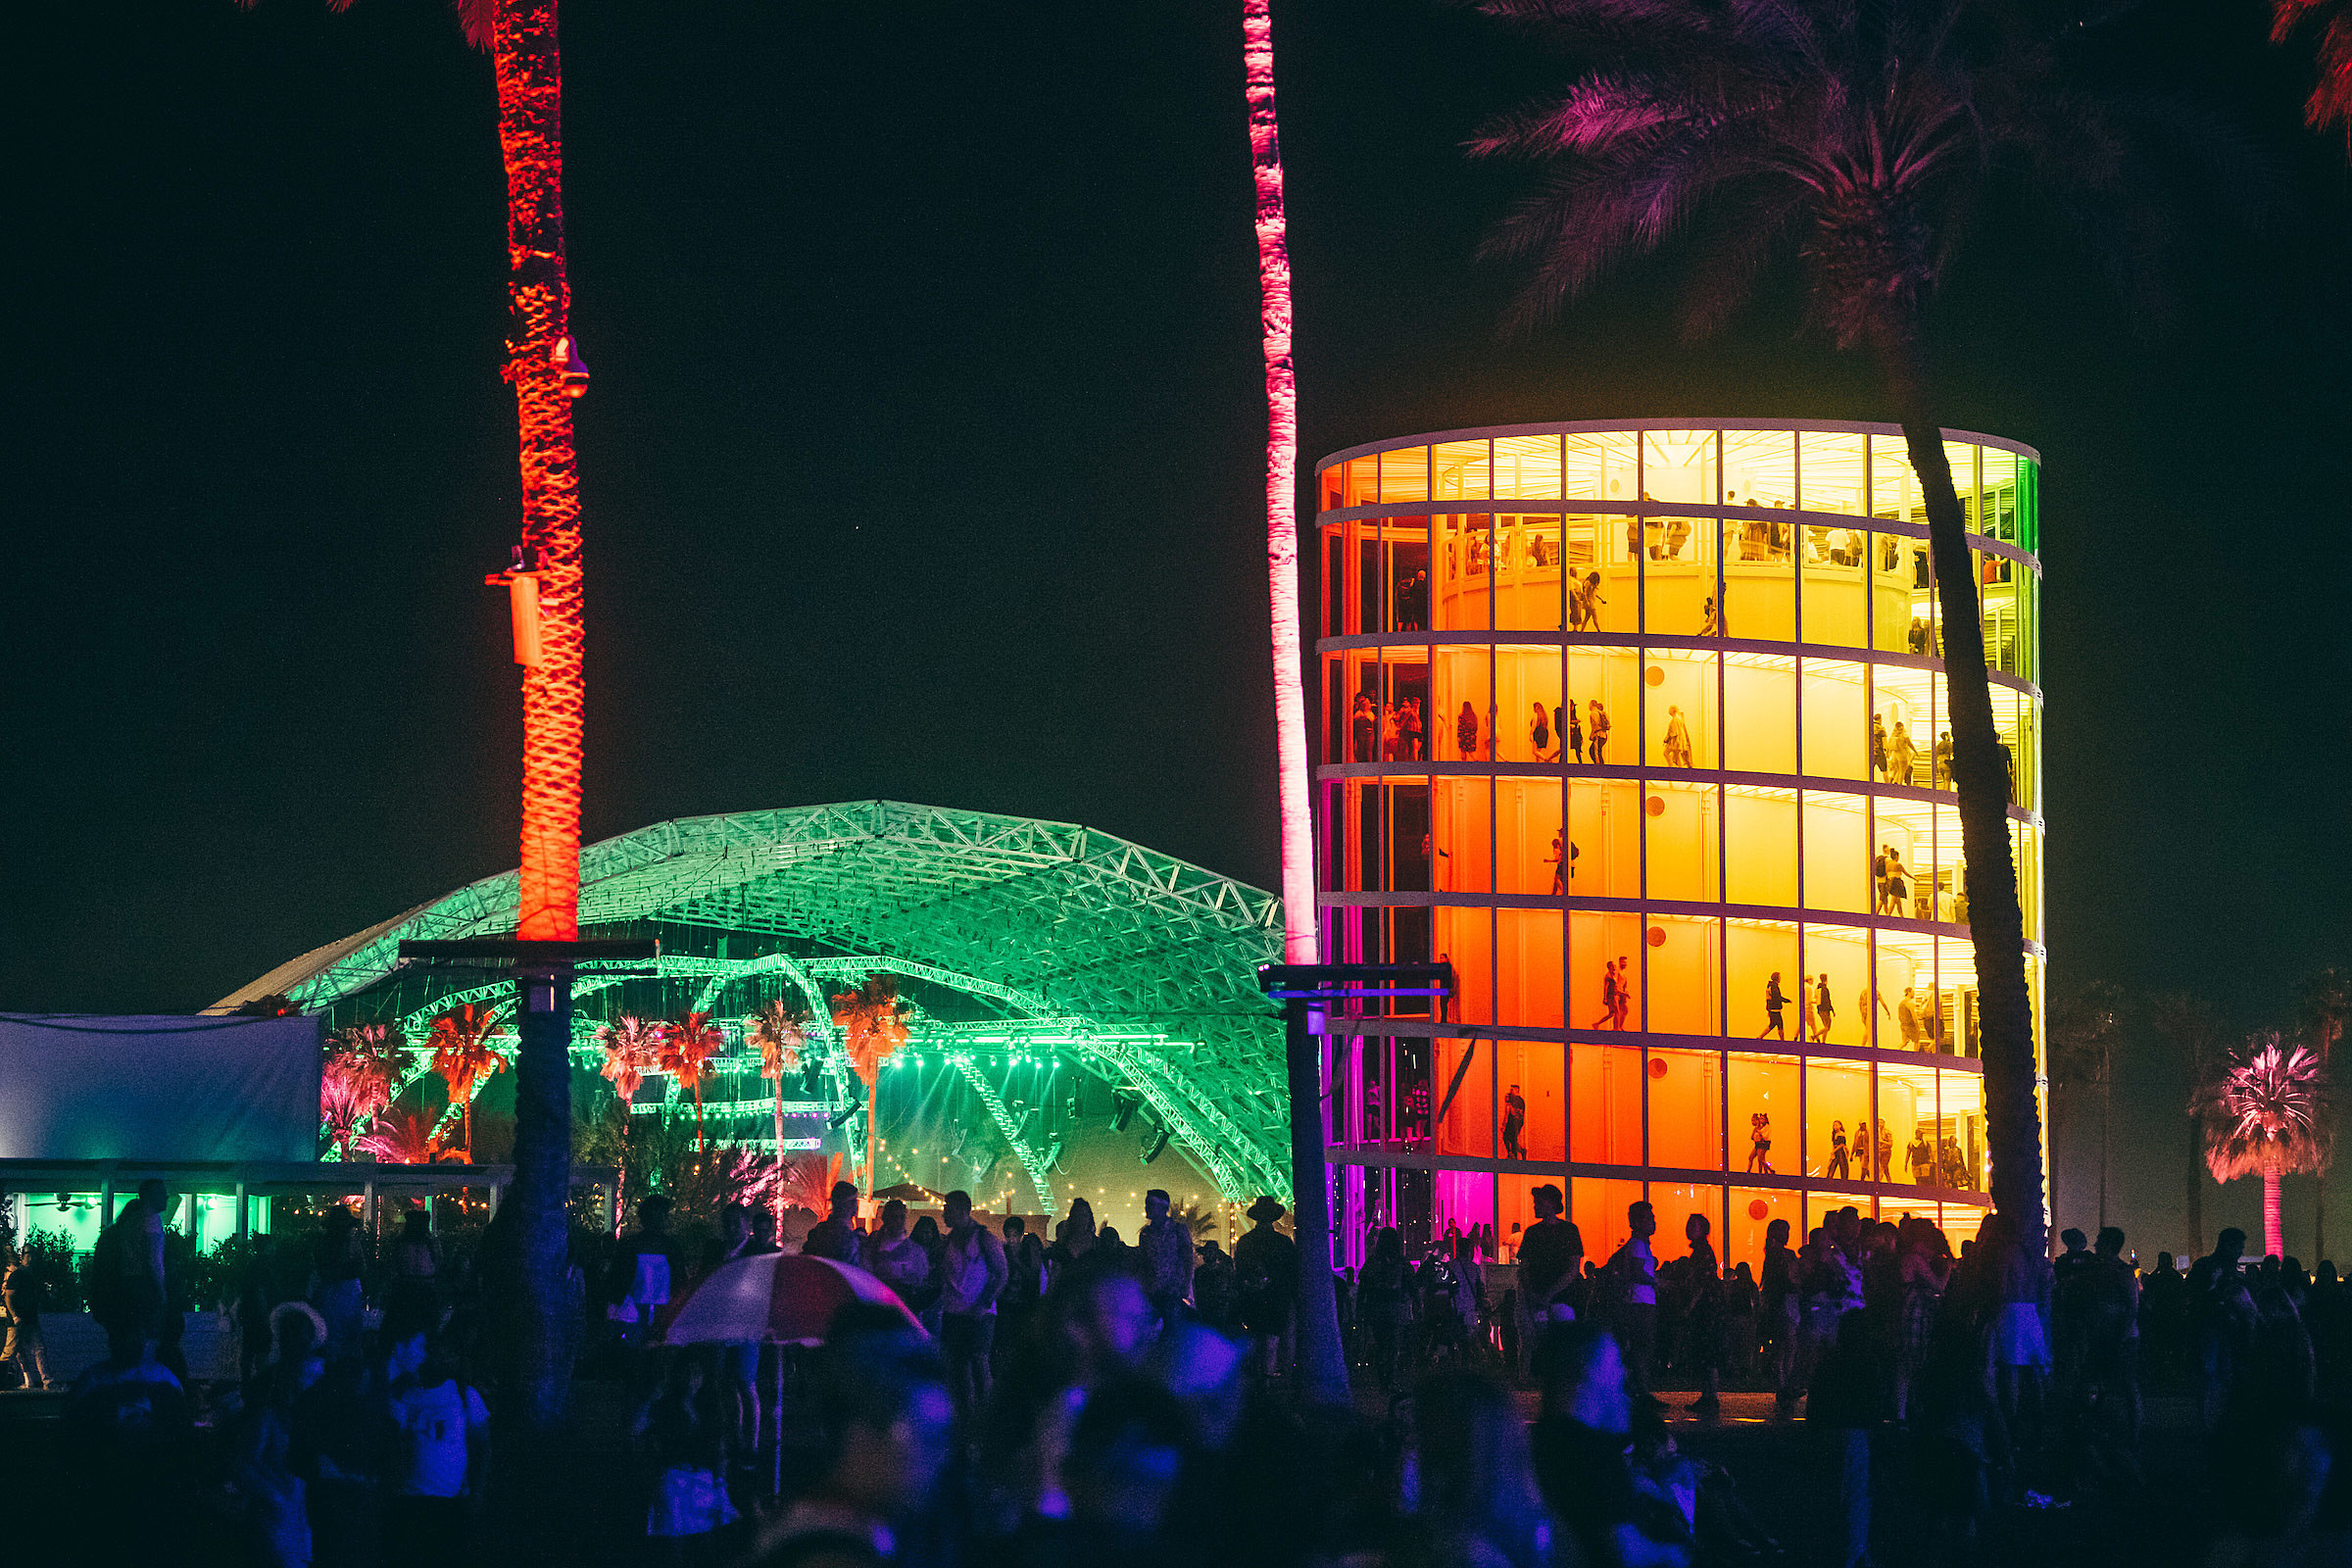 No injuries reported after small fire breaks out at Coachella